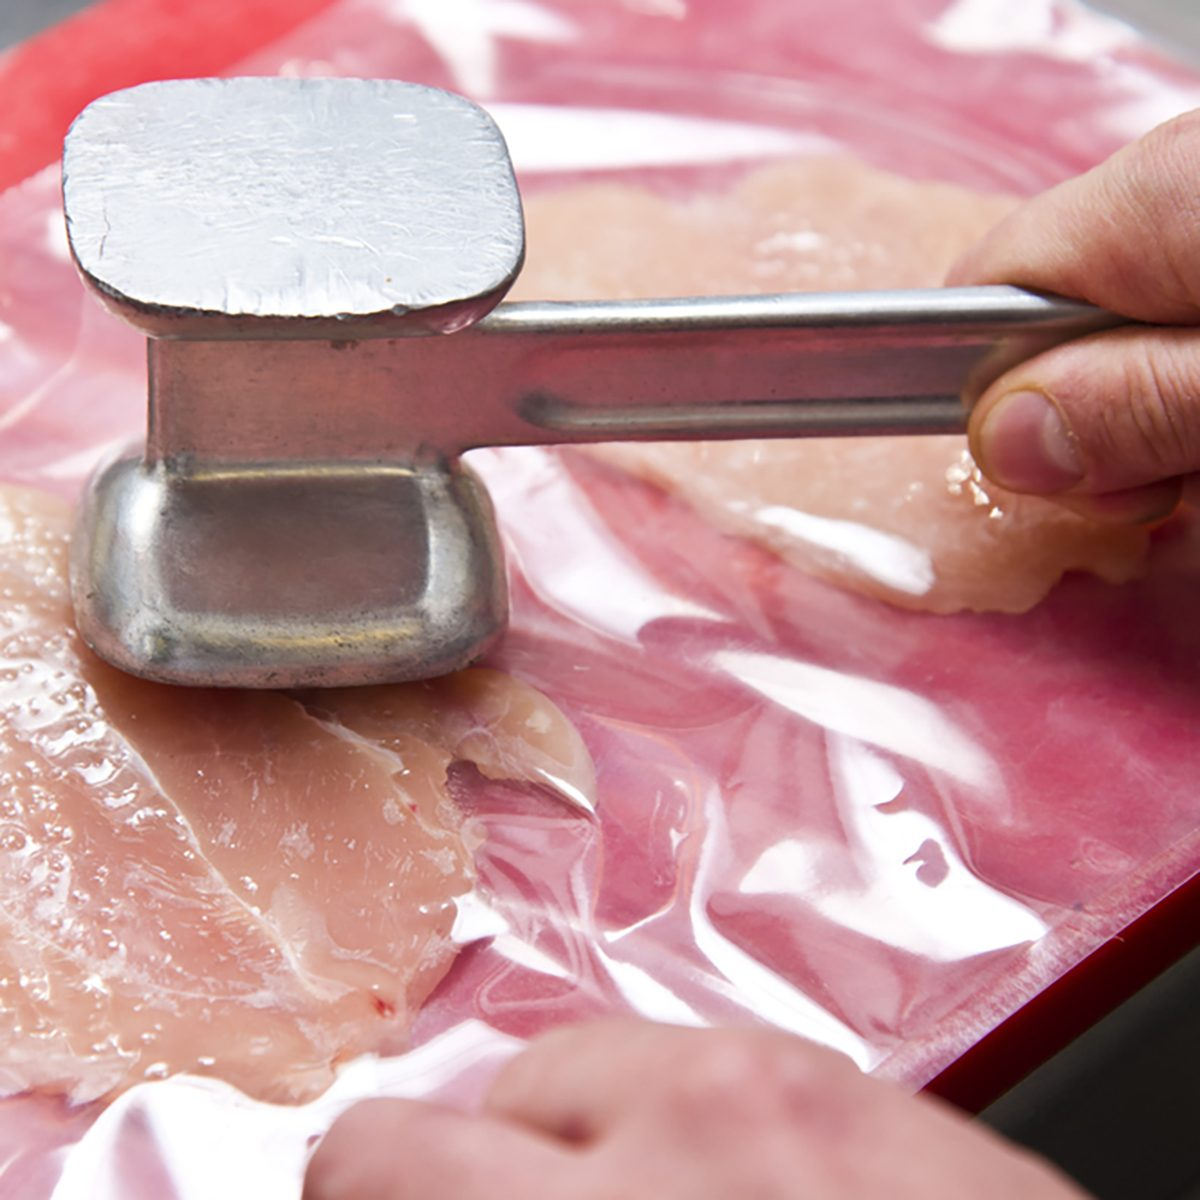 Tenderizing the chicken meat with a mallet - Preparing homemade chicken kiev in a kitchen